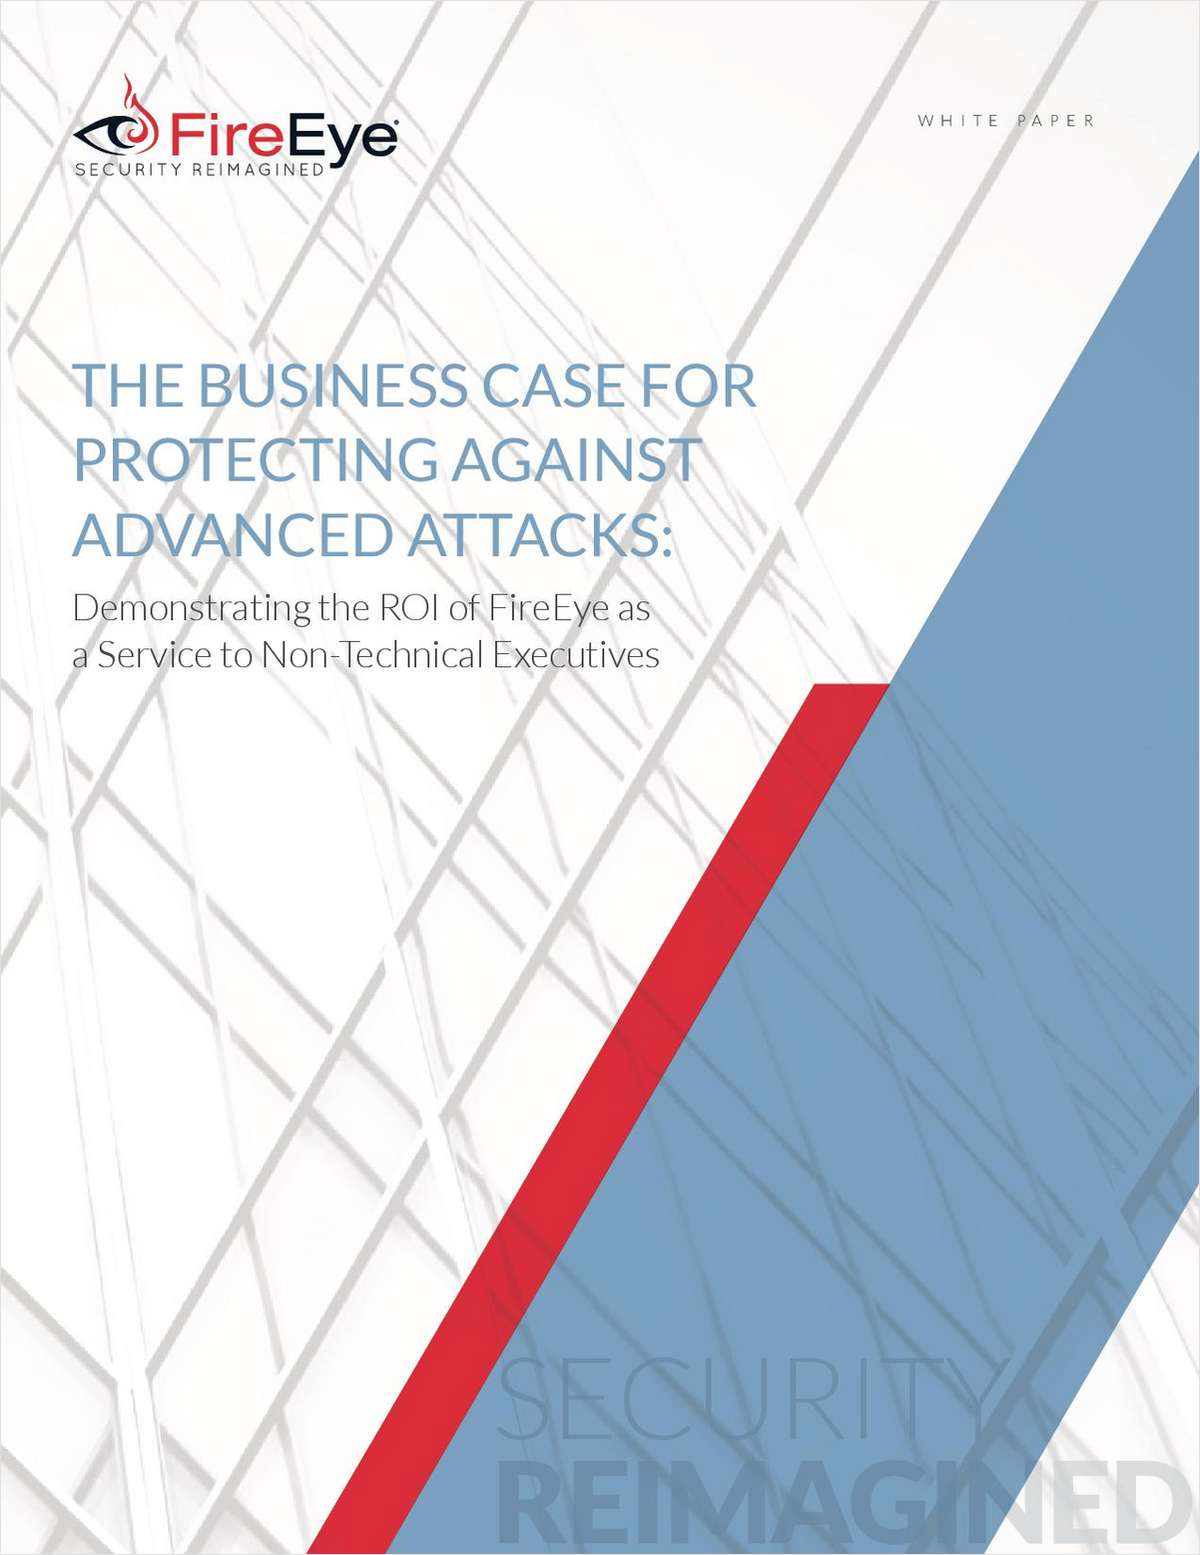 The Business Case for Protecting Against Advance Attacks: Demonstrating the ROI of FireEye as a Service to Non-Technical Executives